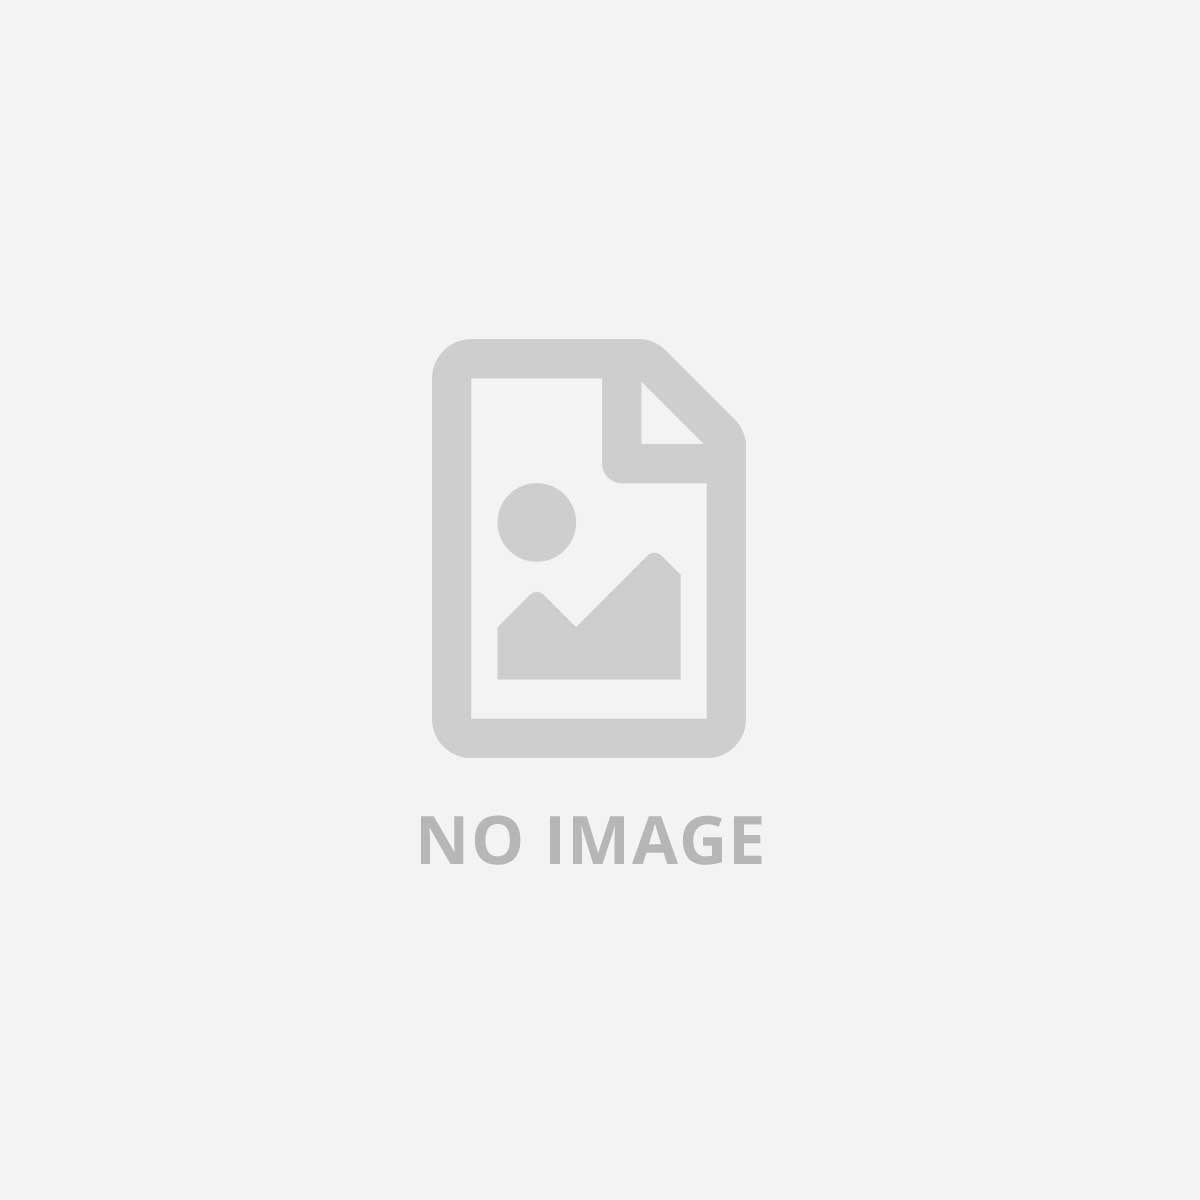 HANNSPREE MONITOR 18 5 LED 16:9 160/170